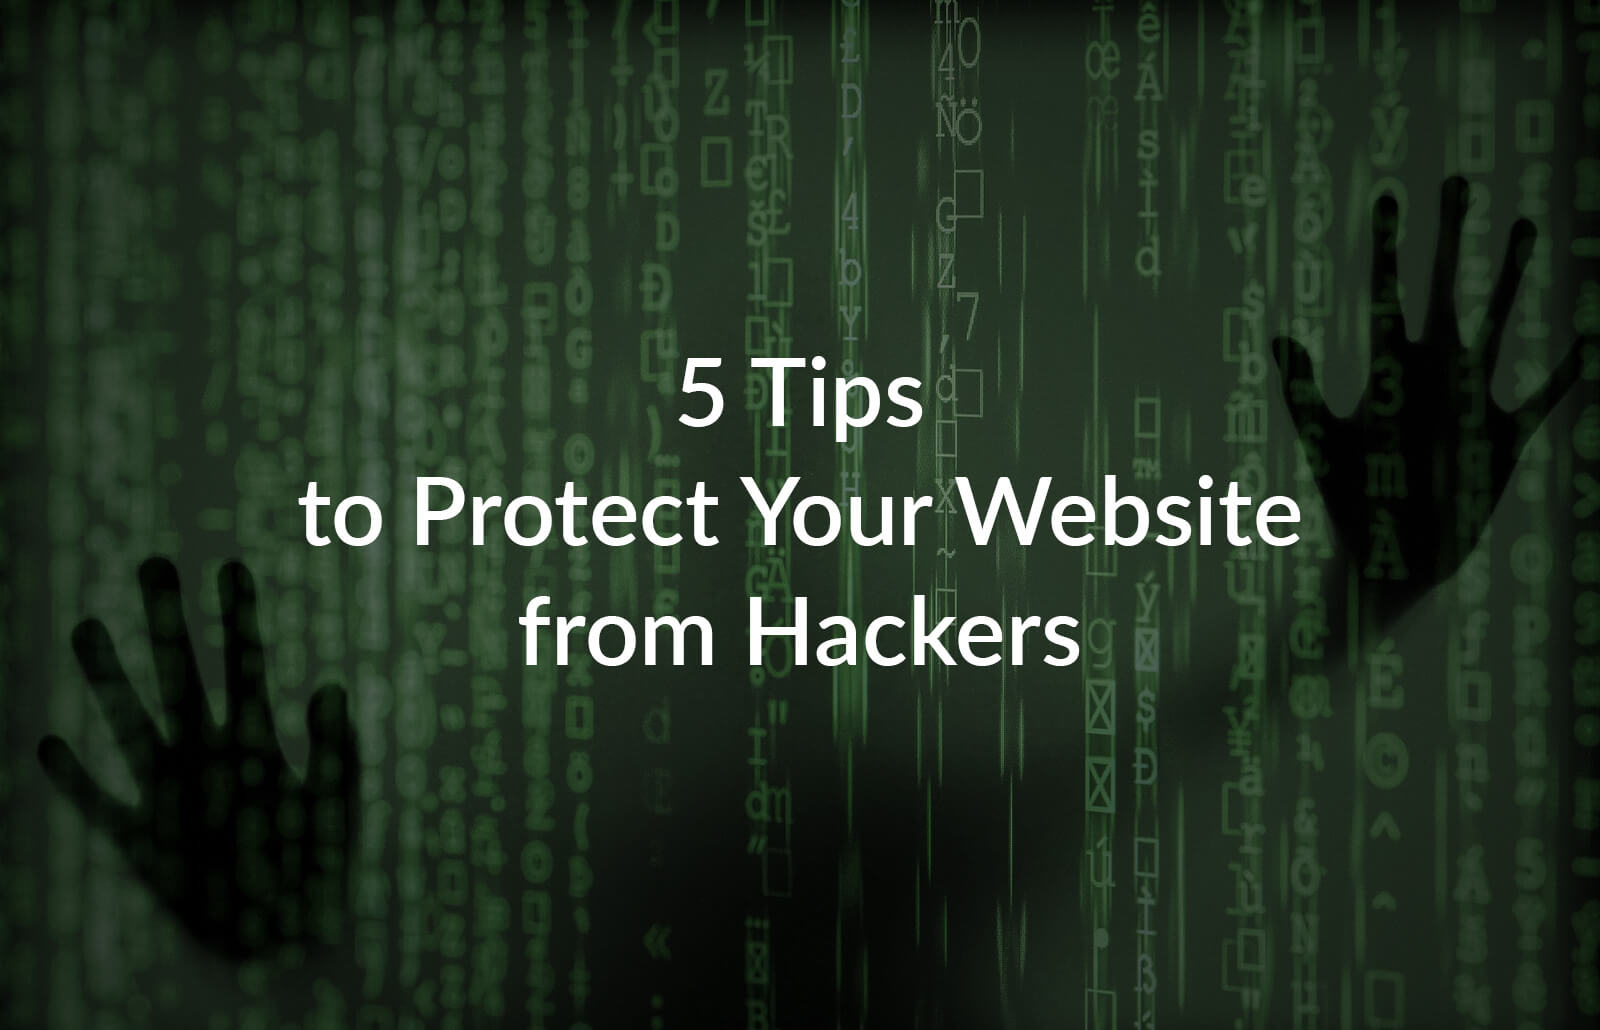 5 Tips to Protect Your Website from Hackers